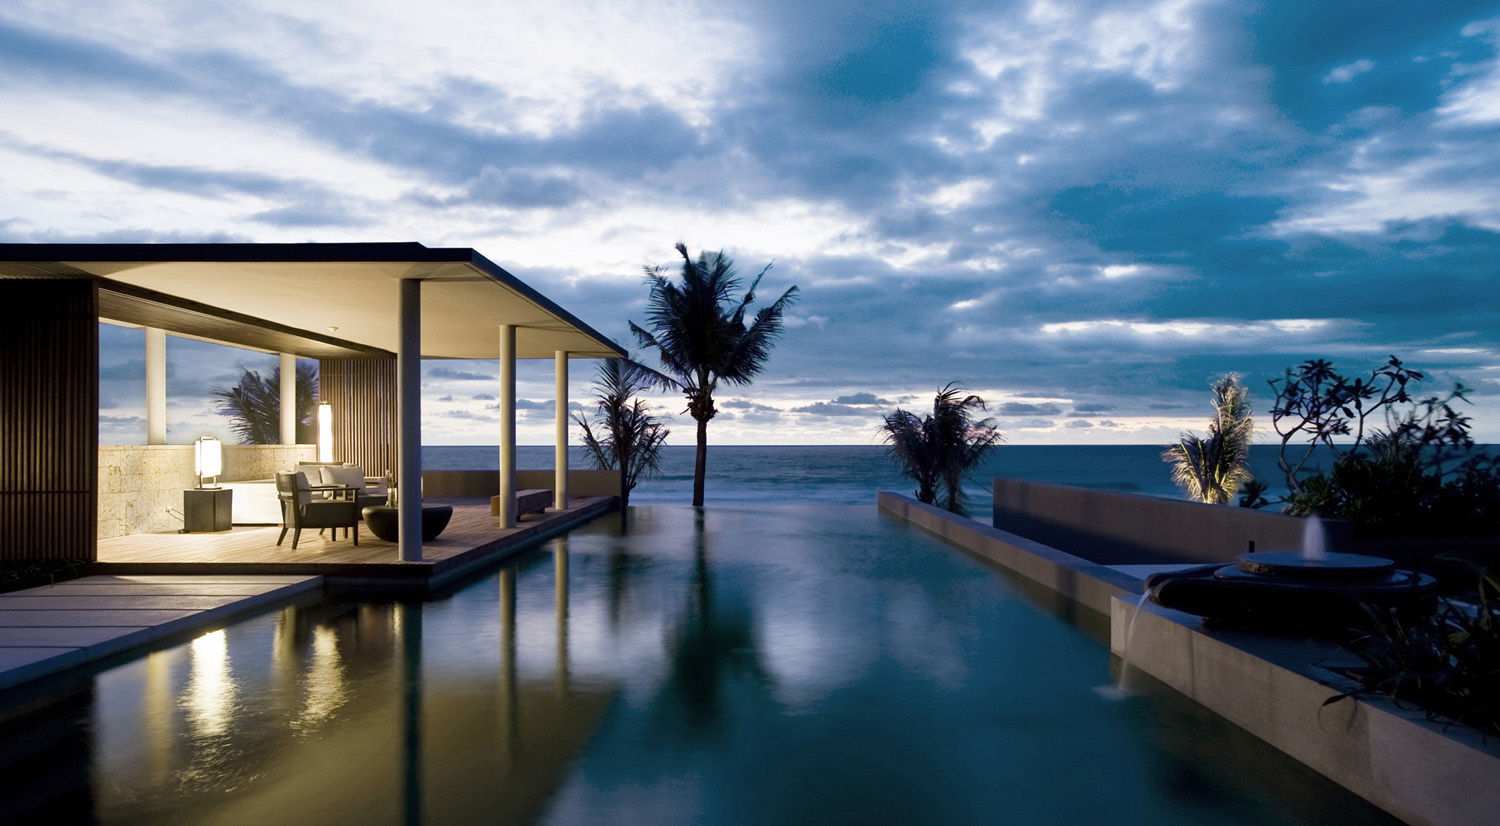 Exquisite Exotic Resort-Alila Villas Soori in Bali by SCDA Architects Homesthetics